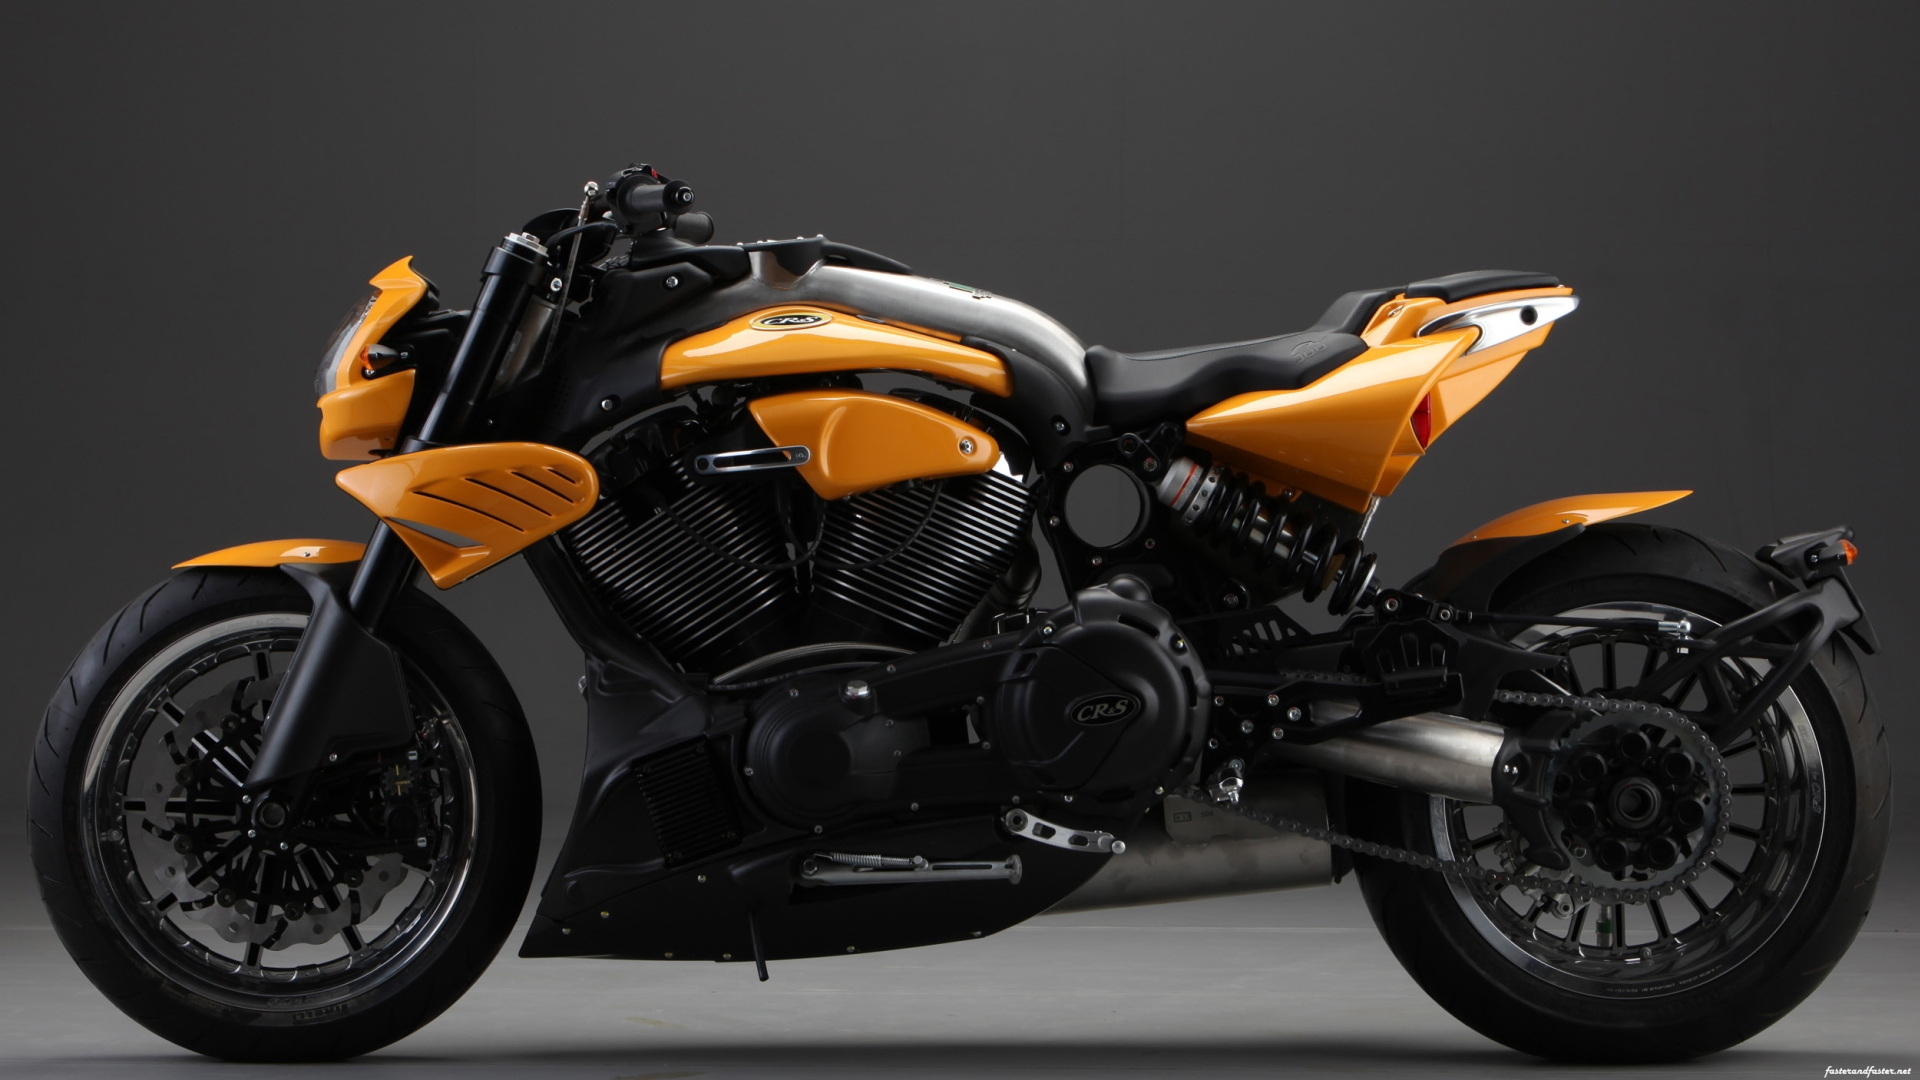 Cr S Duu Motorcycles Are Awesome And Expensive Photo Gallery 52484